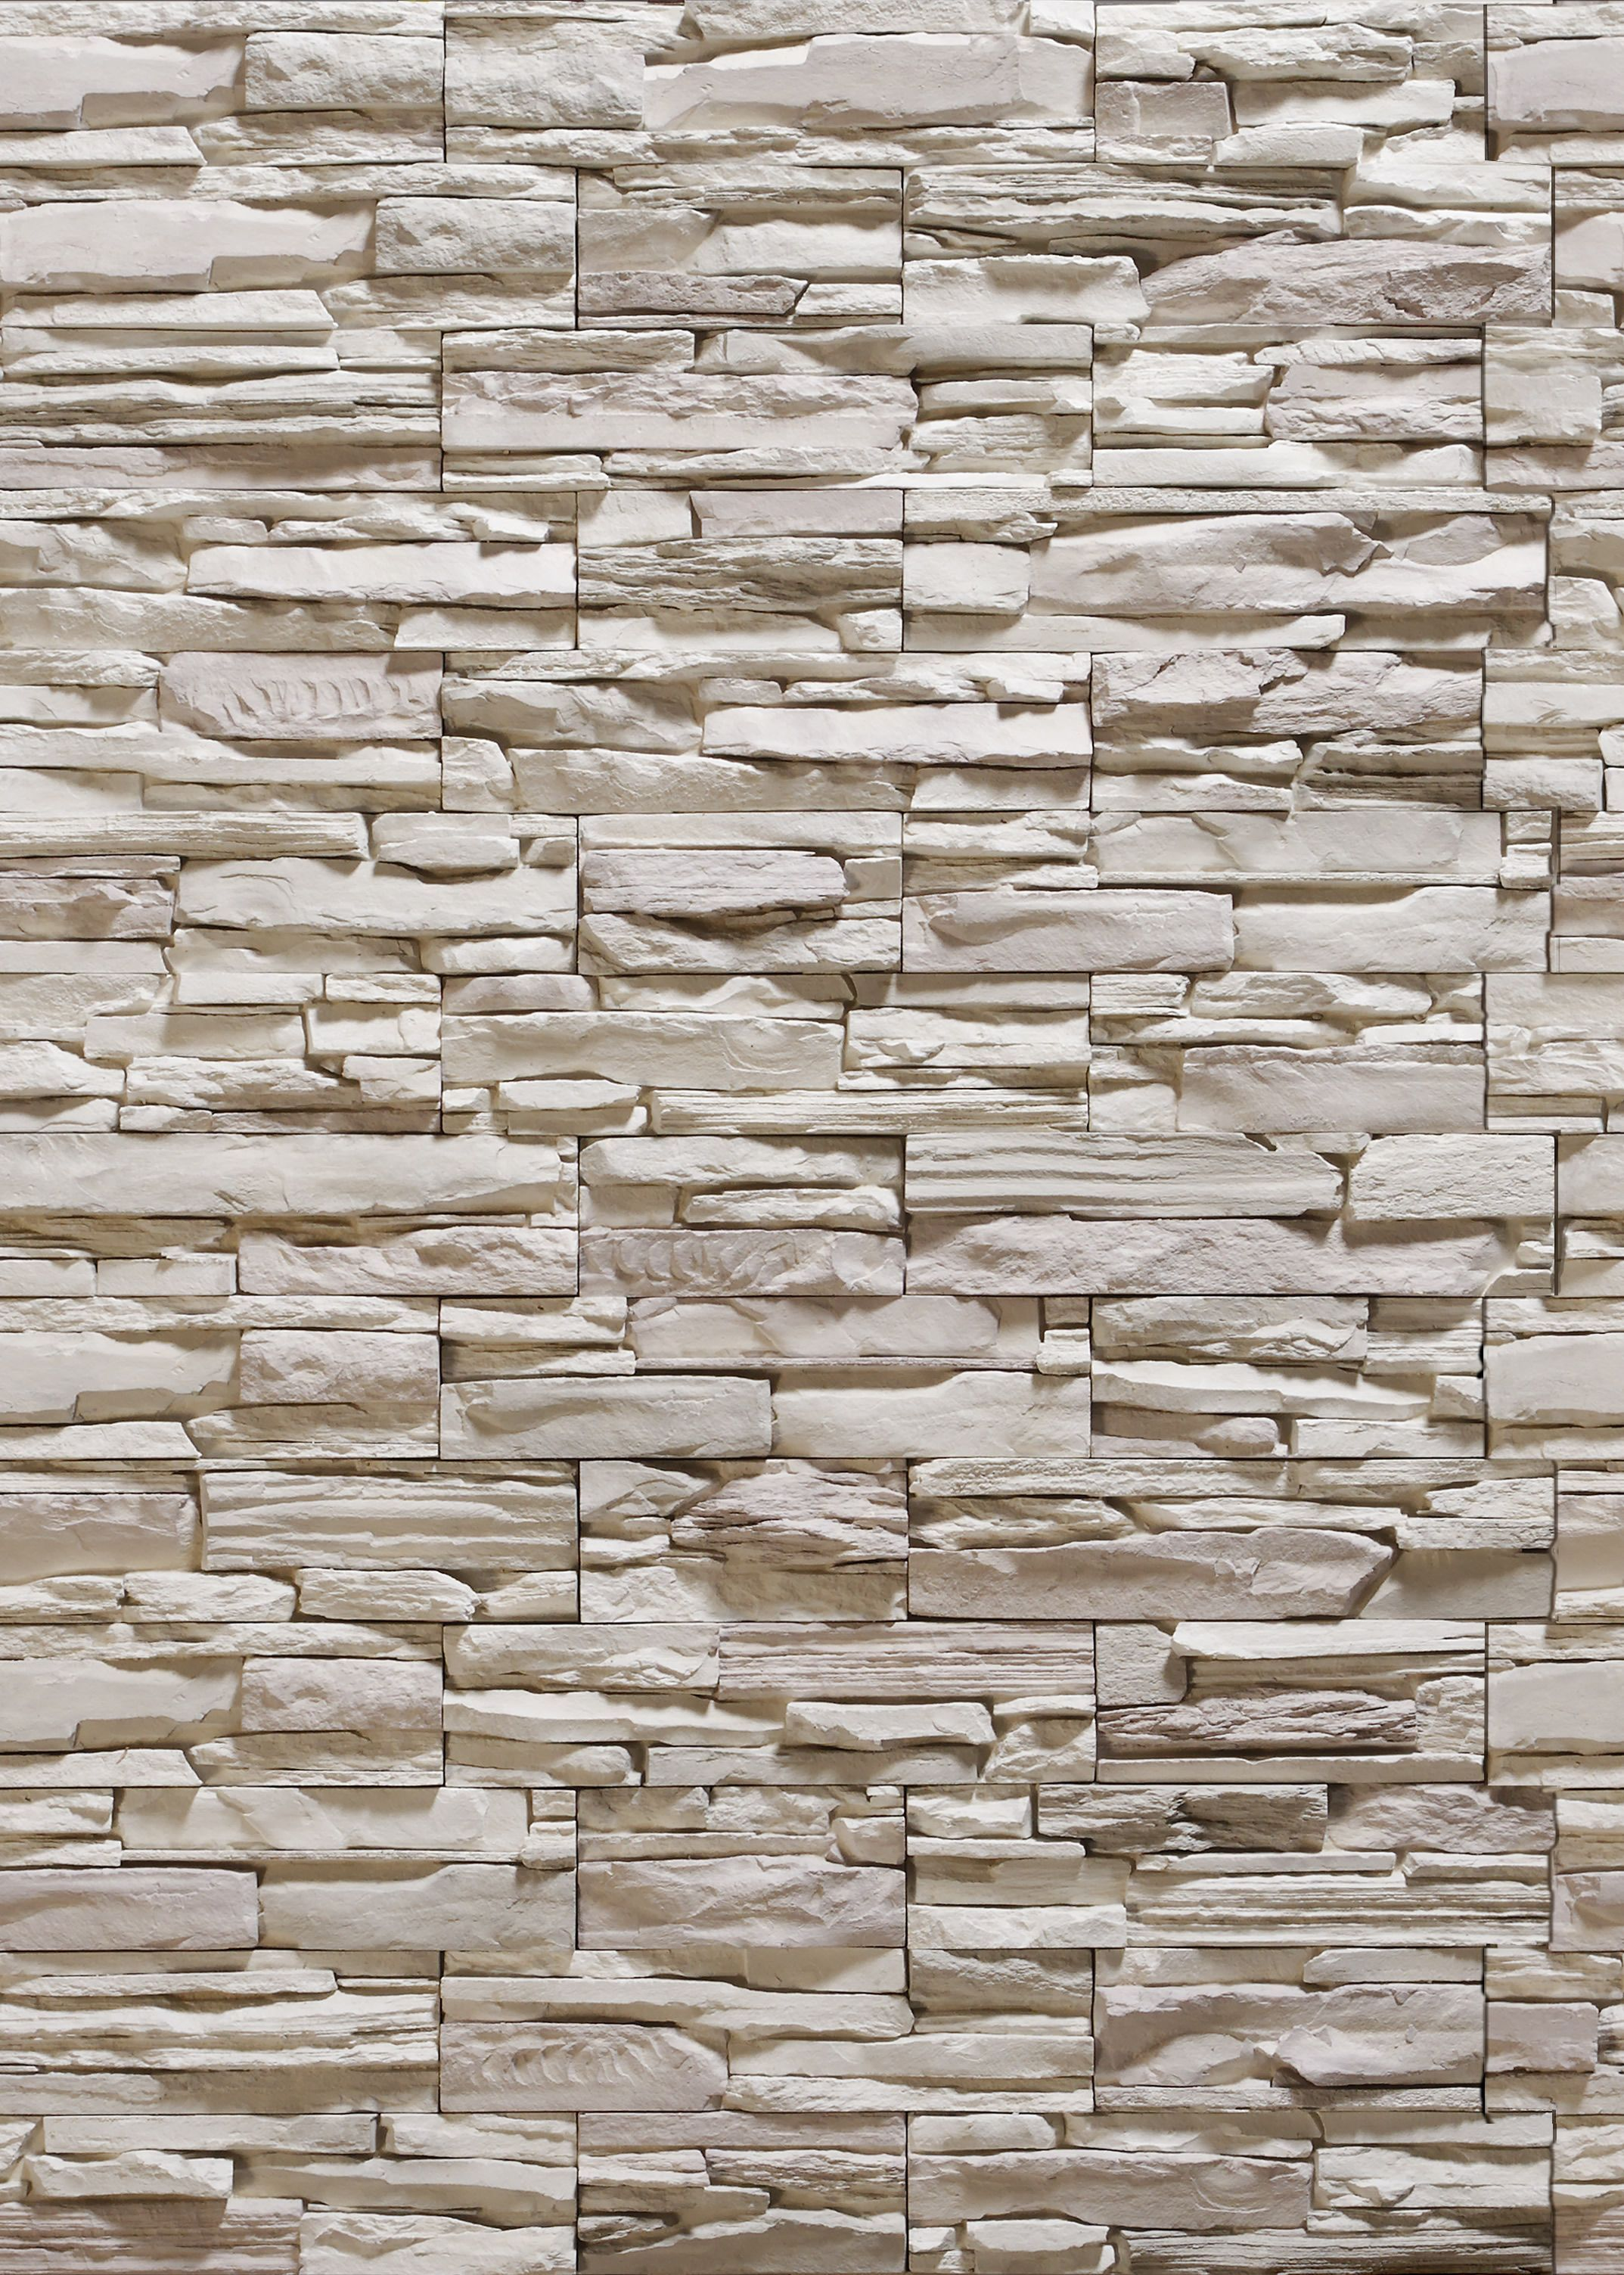 Wall Texture Types Ceiling Texture Types Wall Interior Decor Walltexture Stone Texture Ceiling Texture Ceiling Texture Types